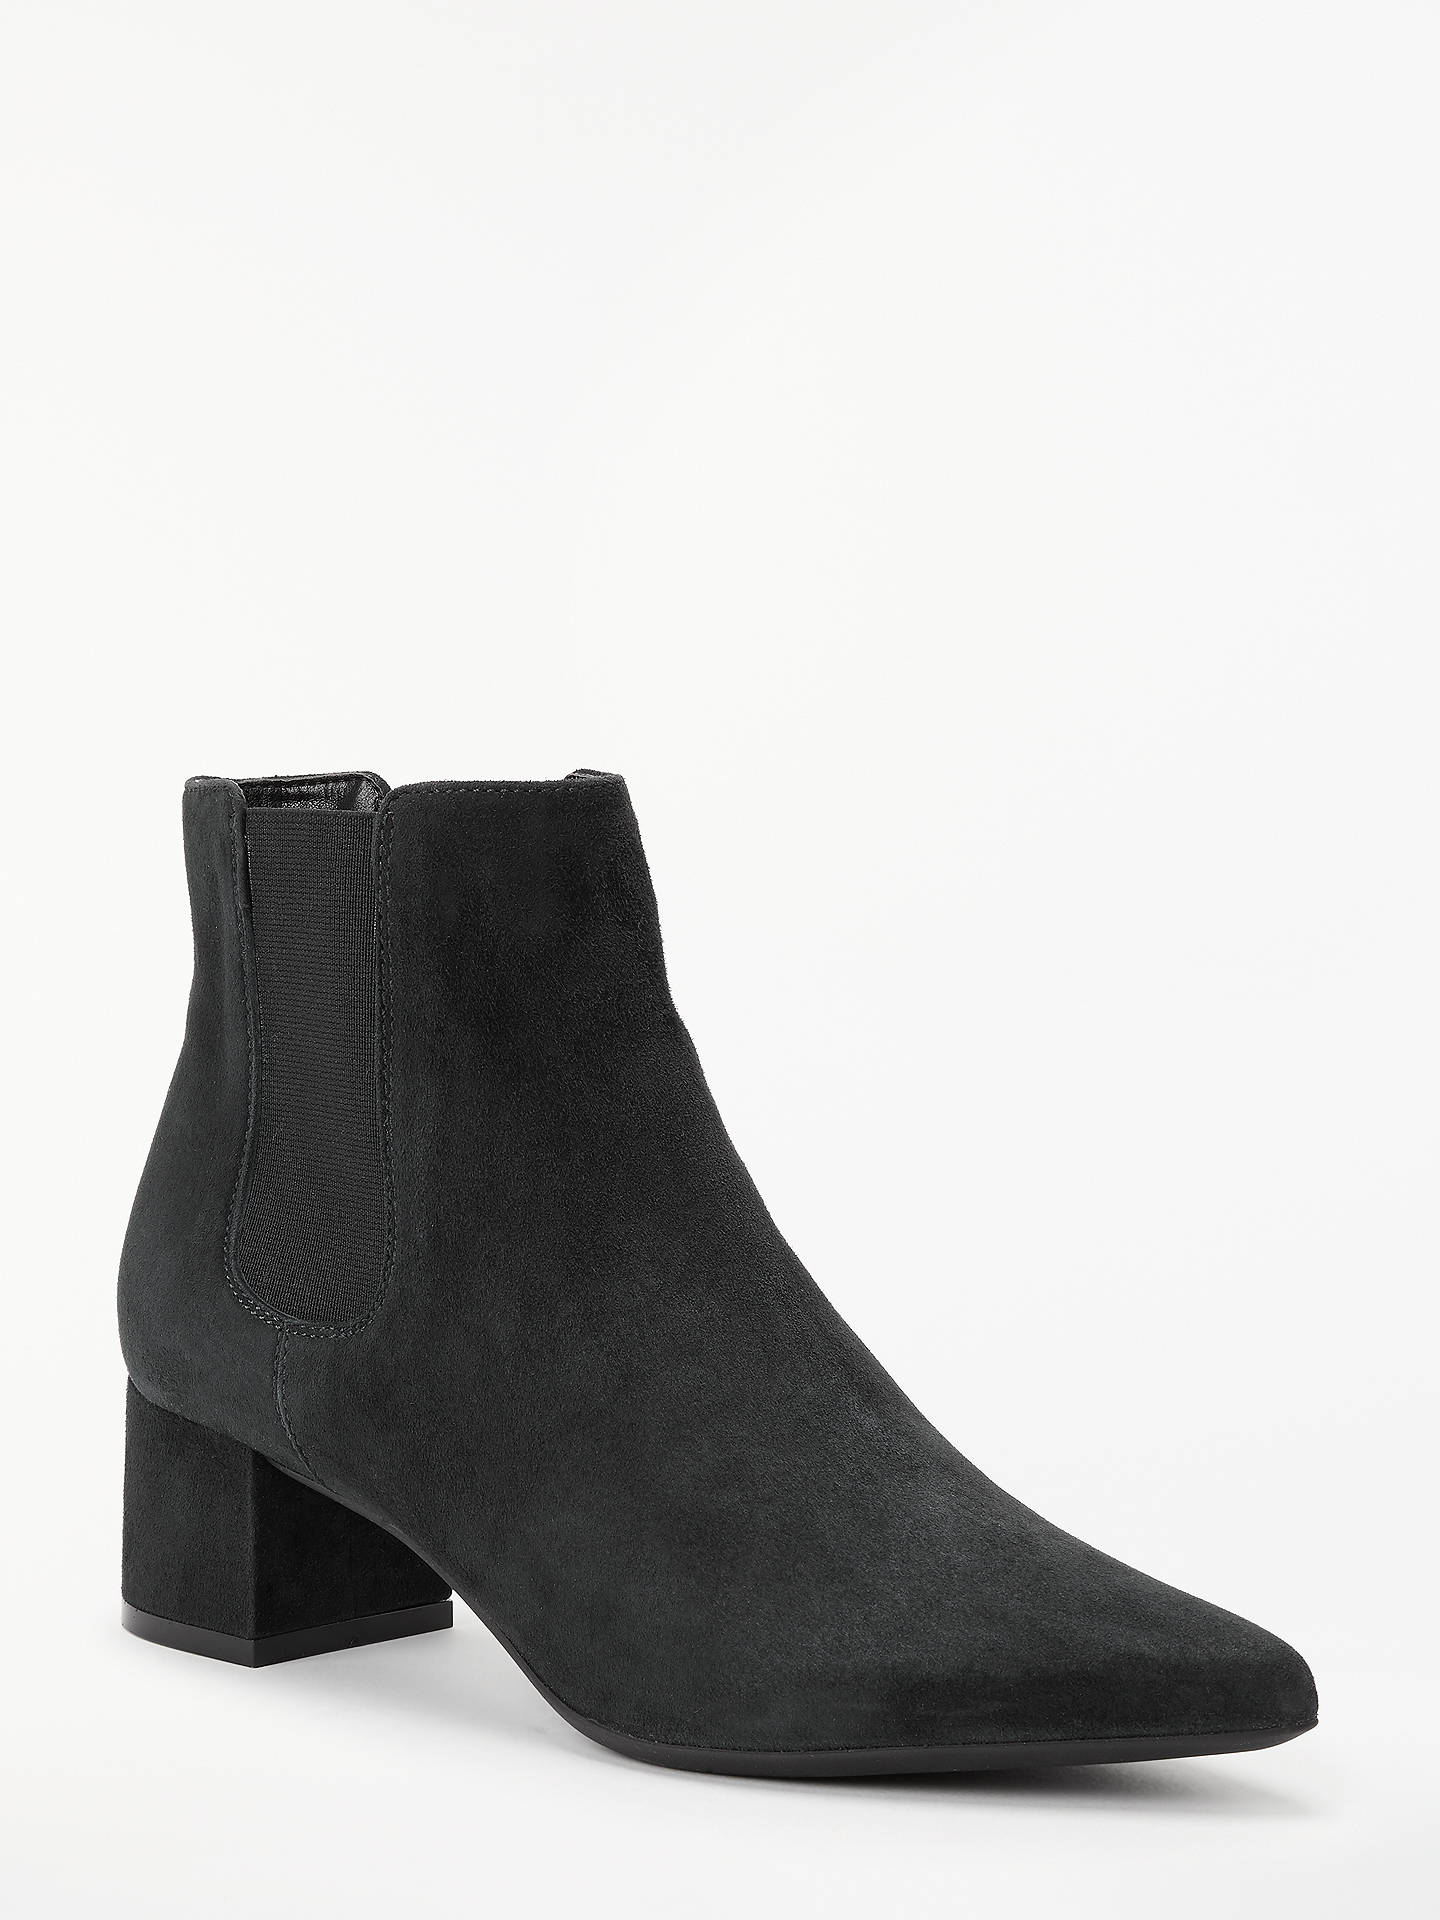 BuyJohn Lewis & Partners Octavia Pointed Toe Chelsea Boots, Black Suede, 6 Online at johnlewis.com